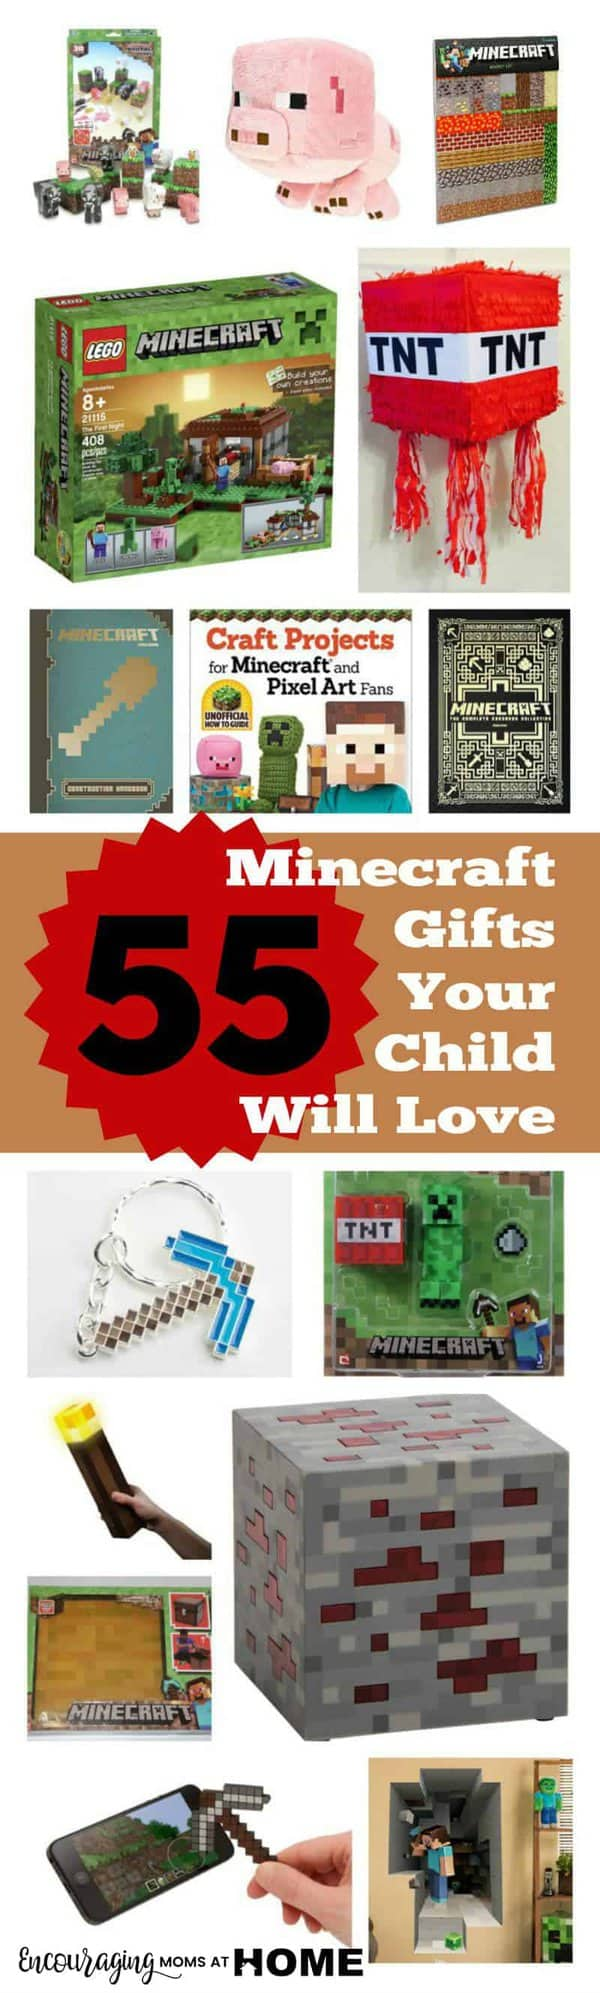 55 minecraft gifts your child will love